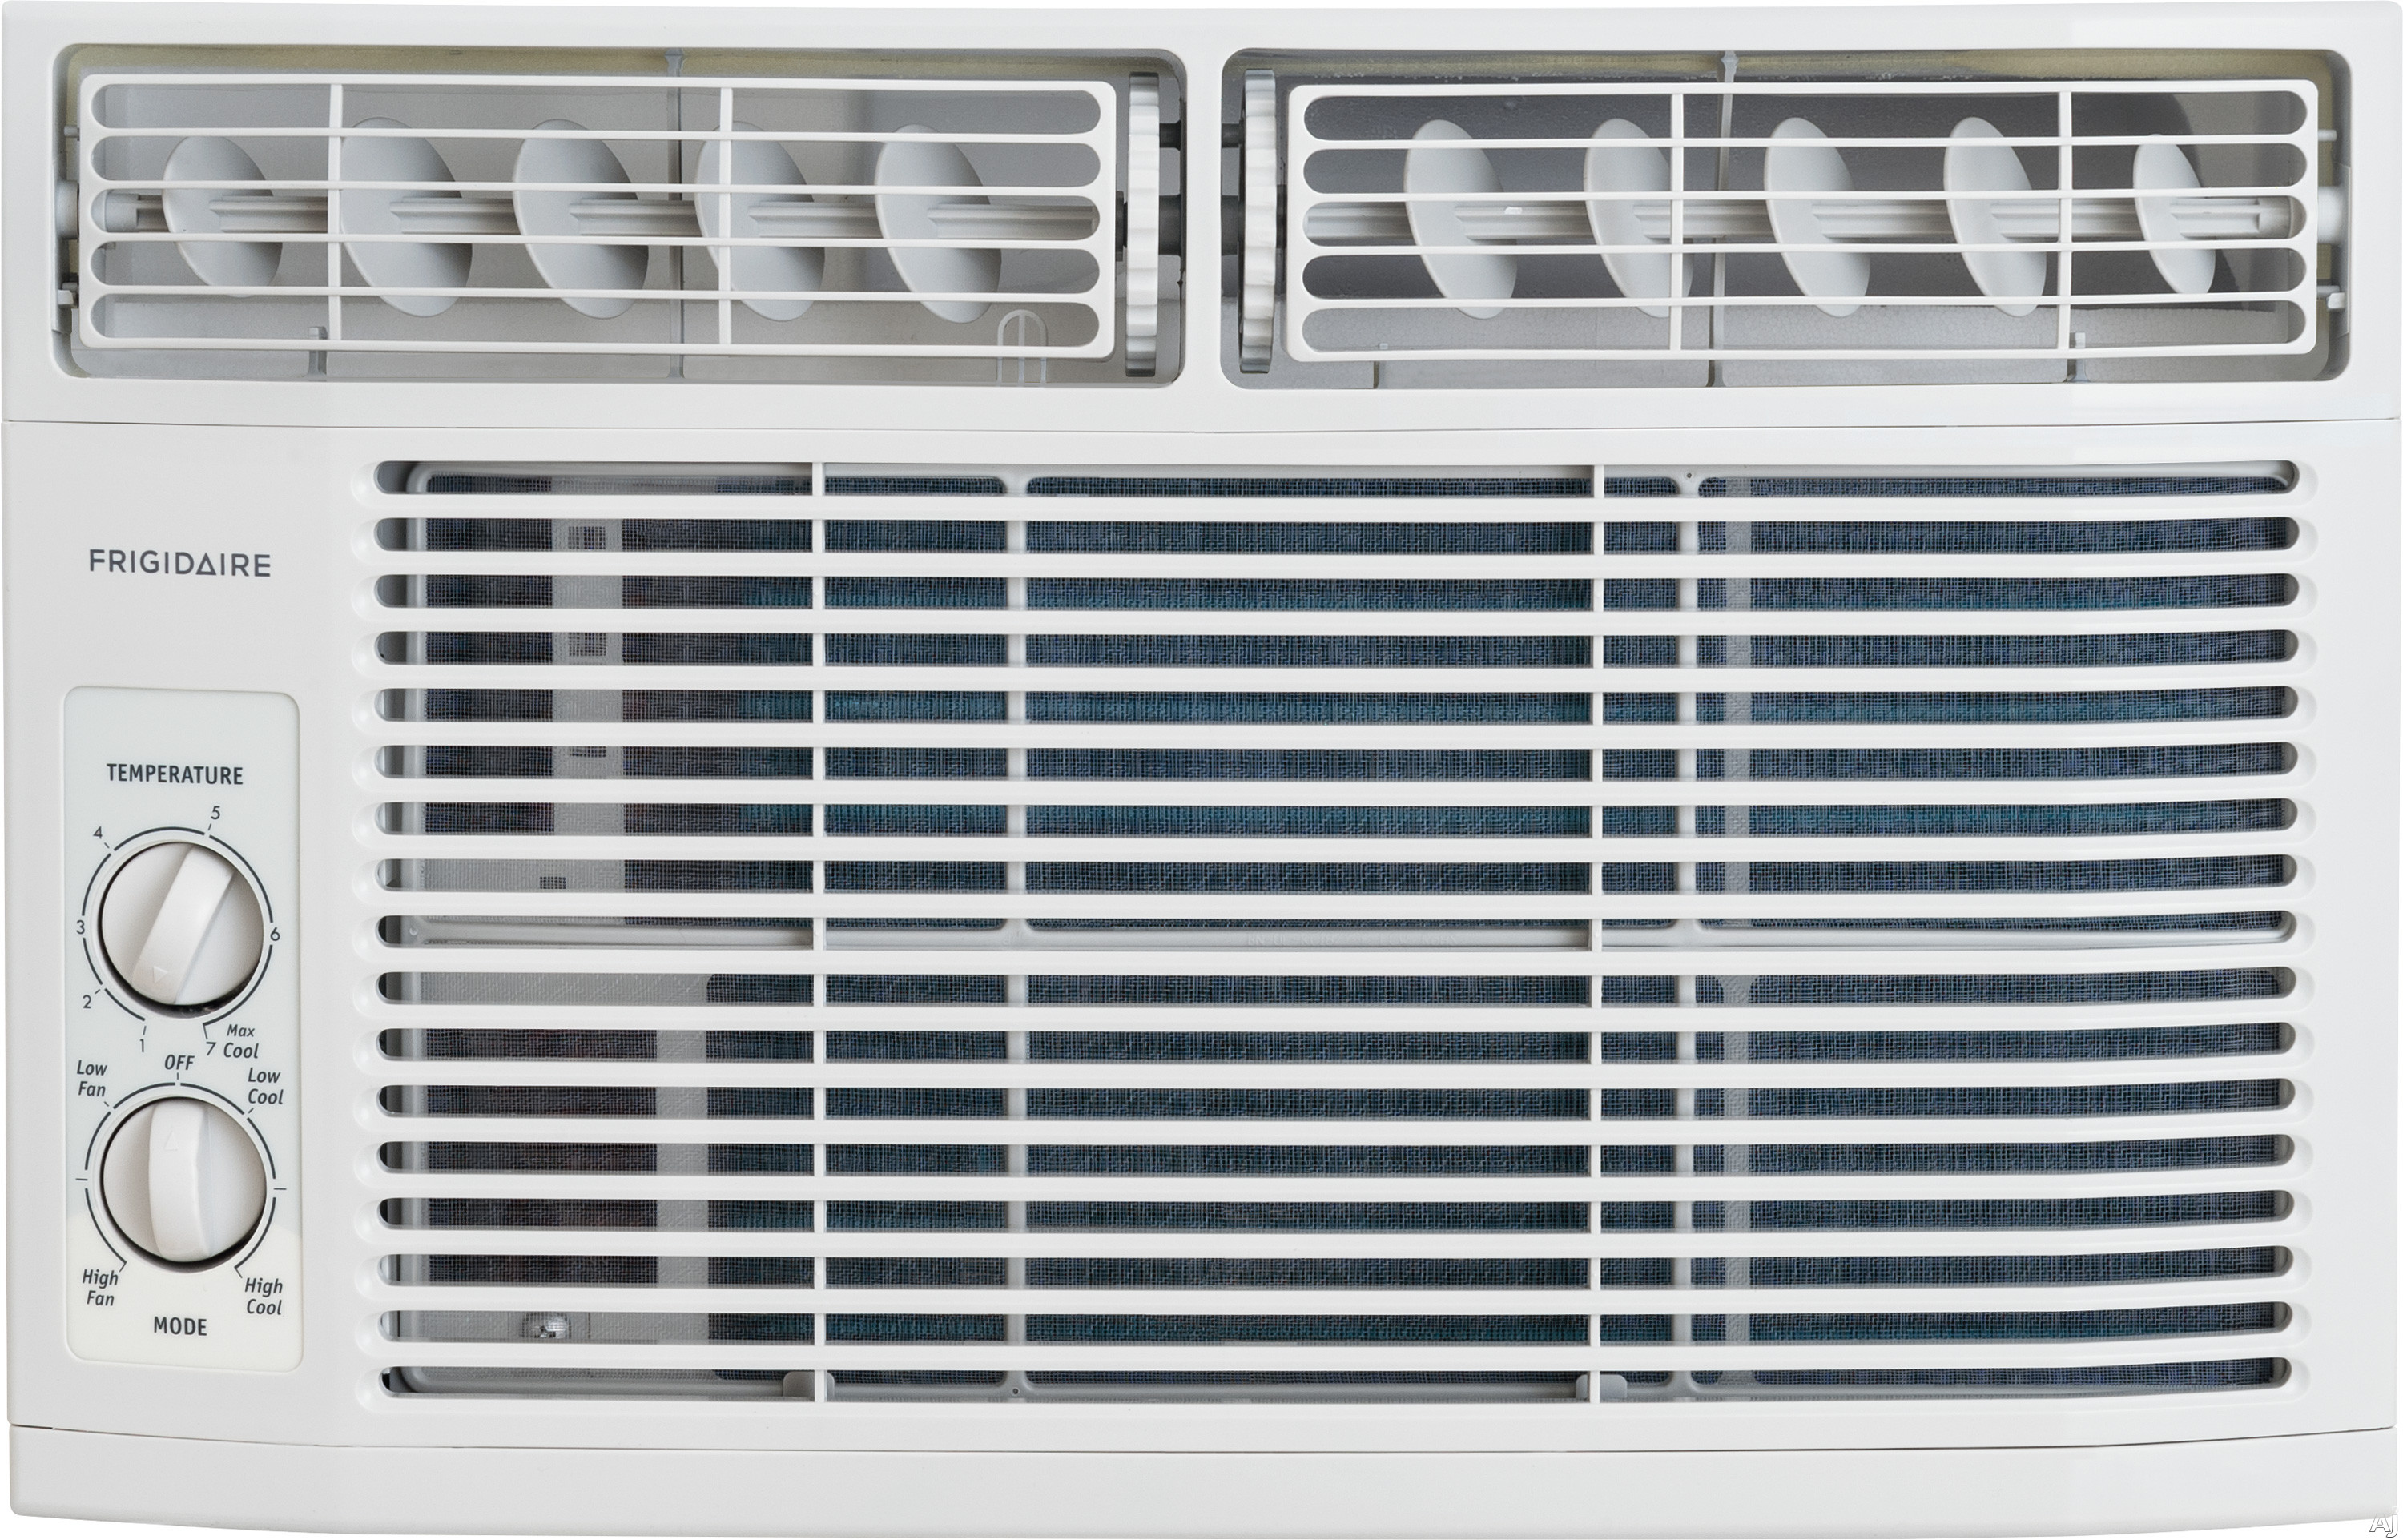 Frigidaire FFRA0811R1 8,000 BTU Window Air Conditioner with 10.9 EER, R-410A Refrigerant, 1.7 Pts/Hr Dehumidification, 350 sq. ft. Cooling Area, 3 Fan Speeds and Mechanical Controls FFRA0811R1